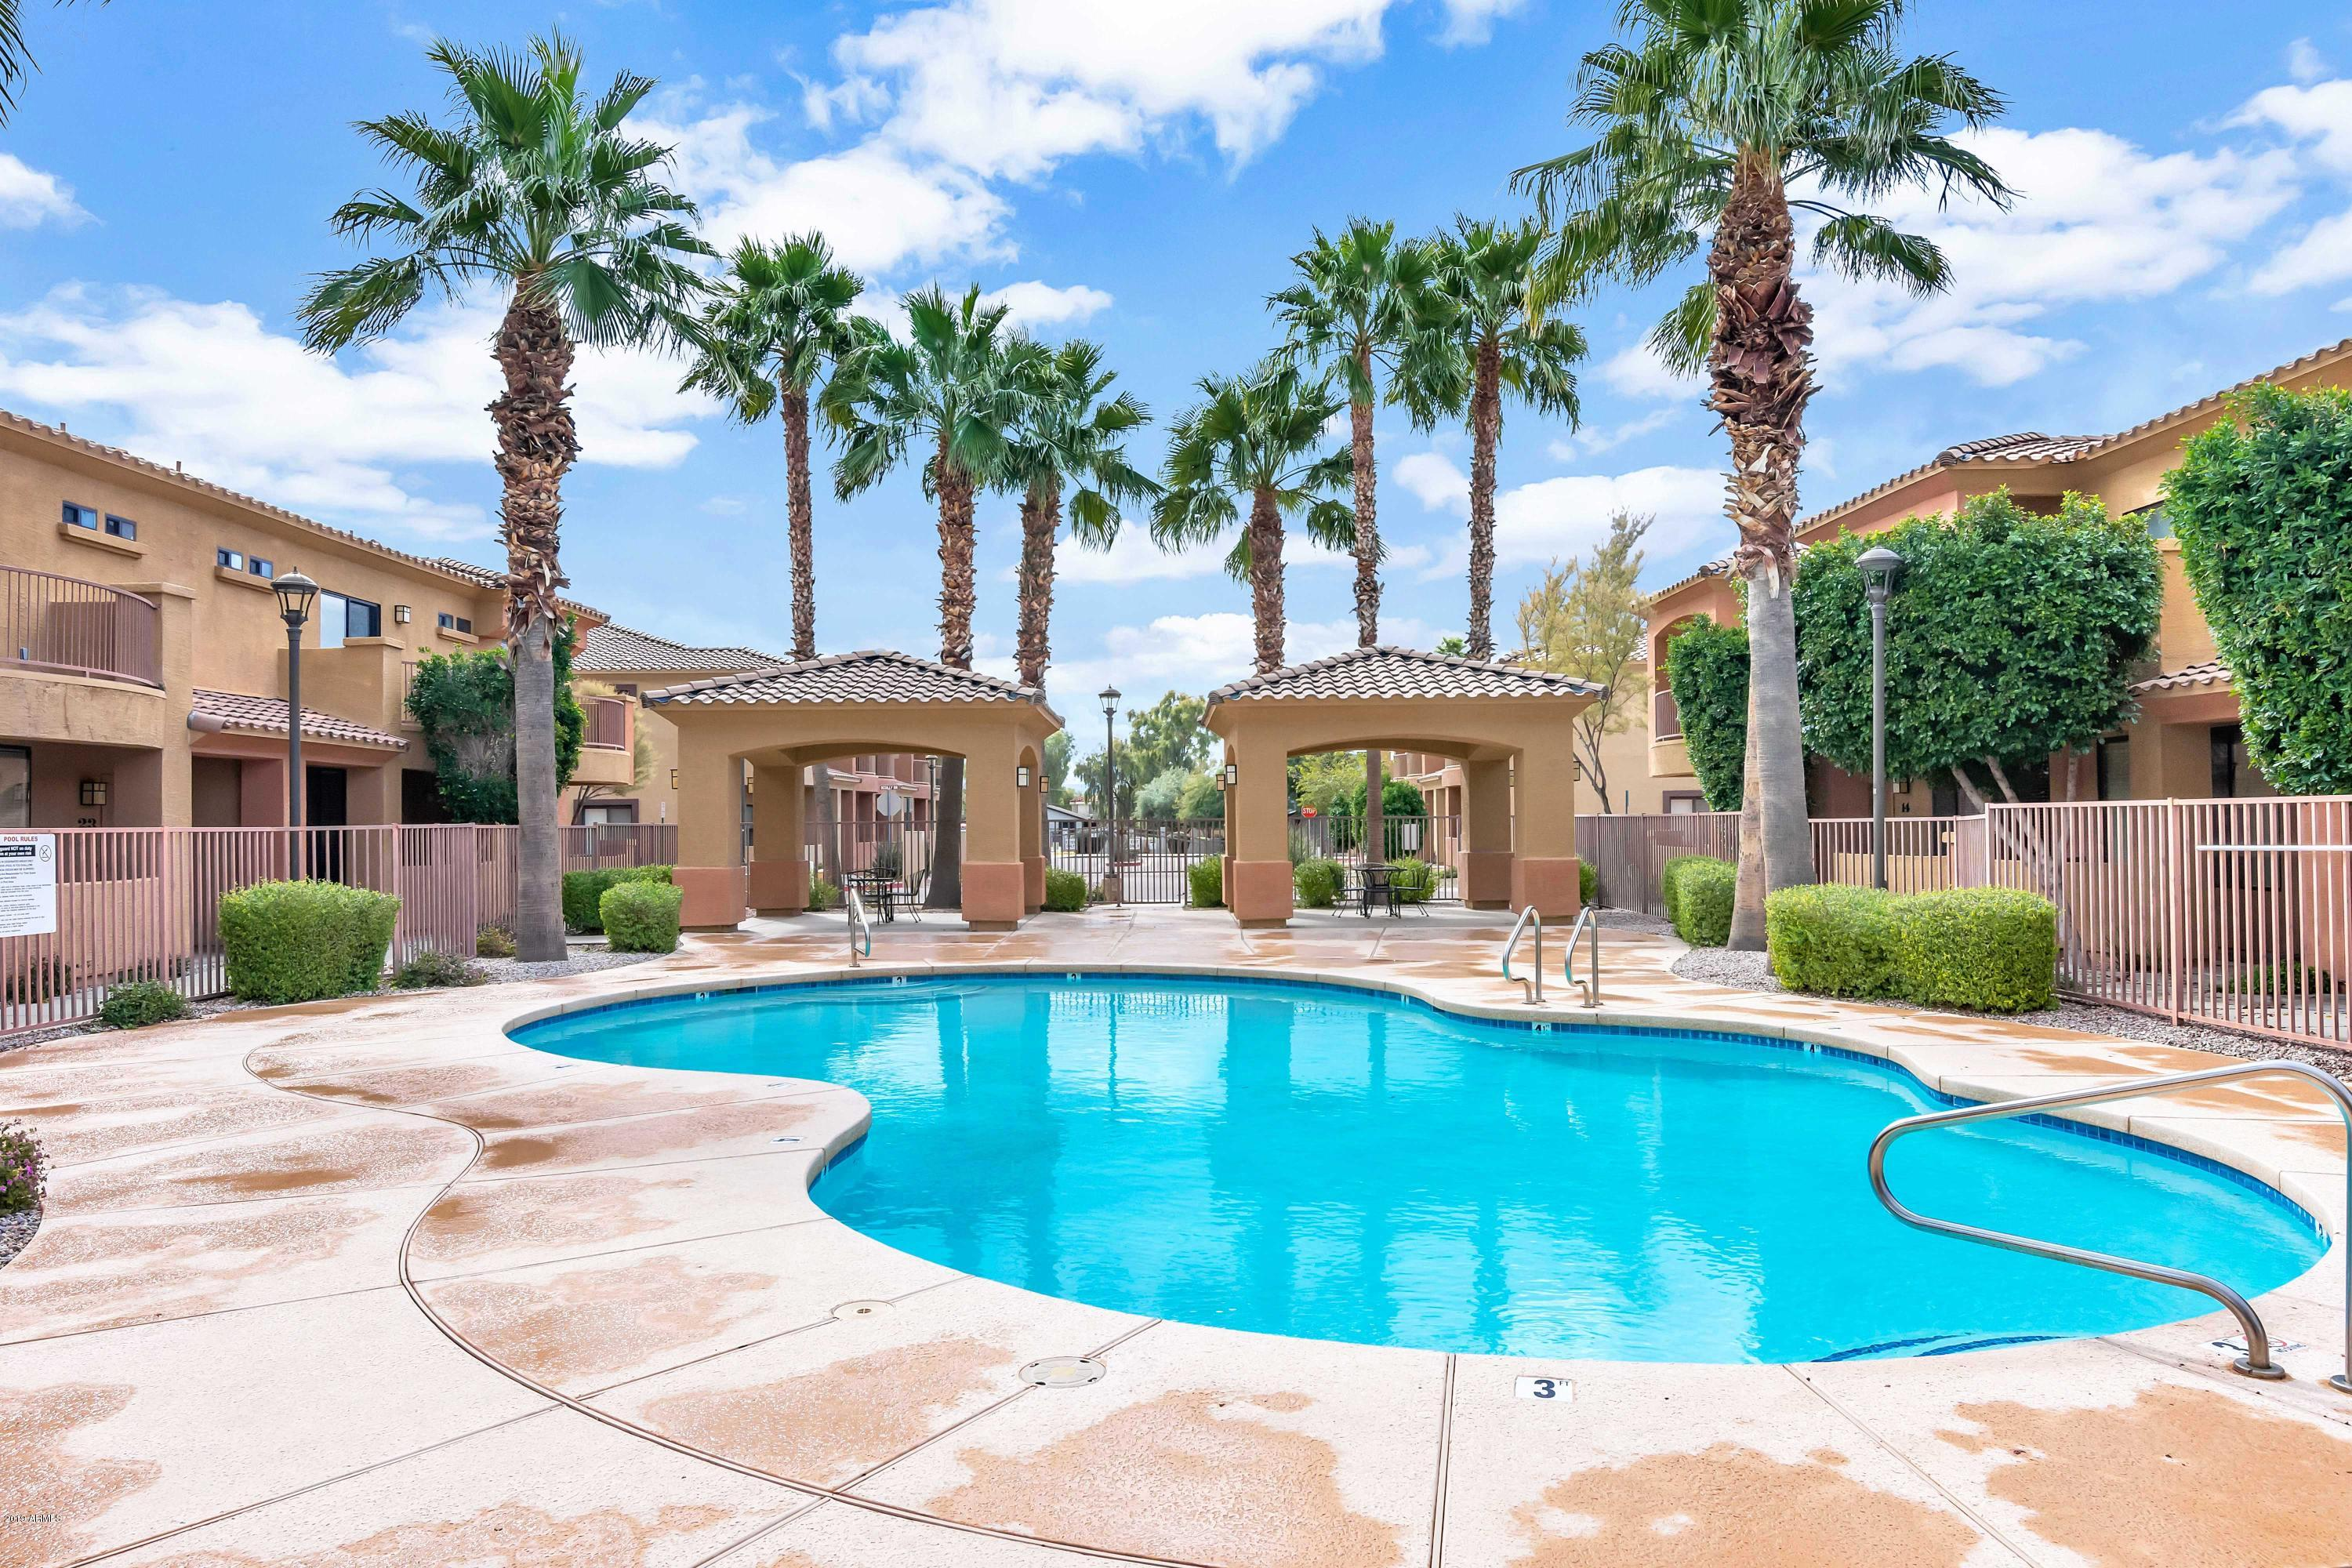 16217 N 30 Th Place, #17, Phoenix, AZ 85032 - SOLD LISTING, MLS # 5885868    Better Homes and Gardens BloomTree Realty